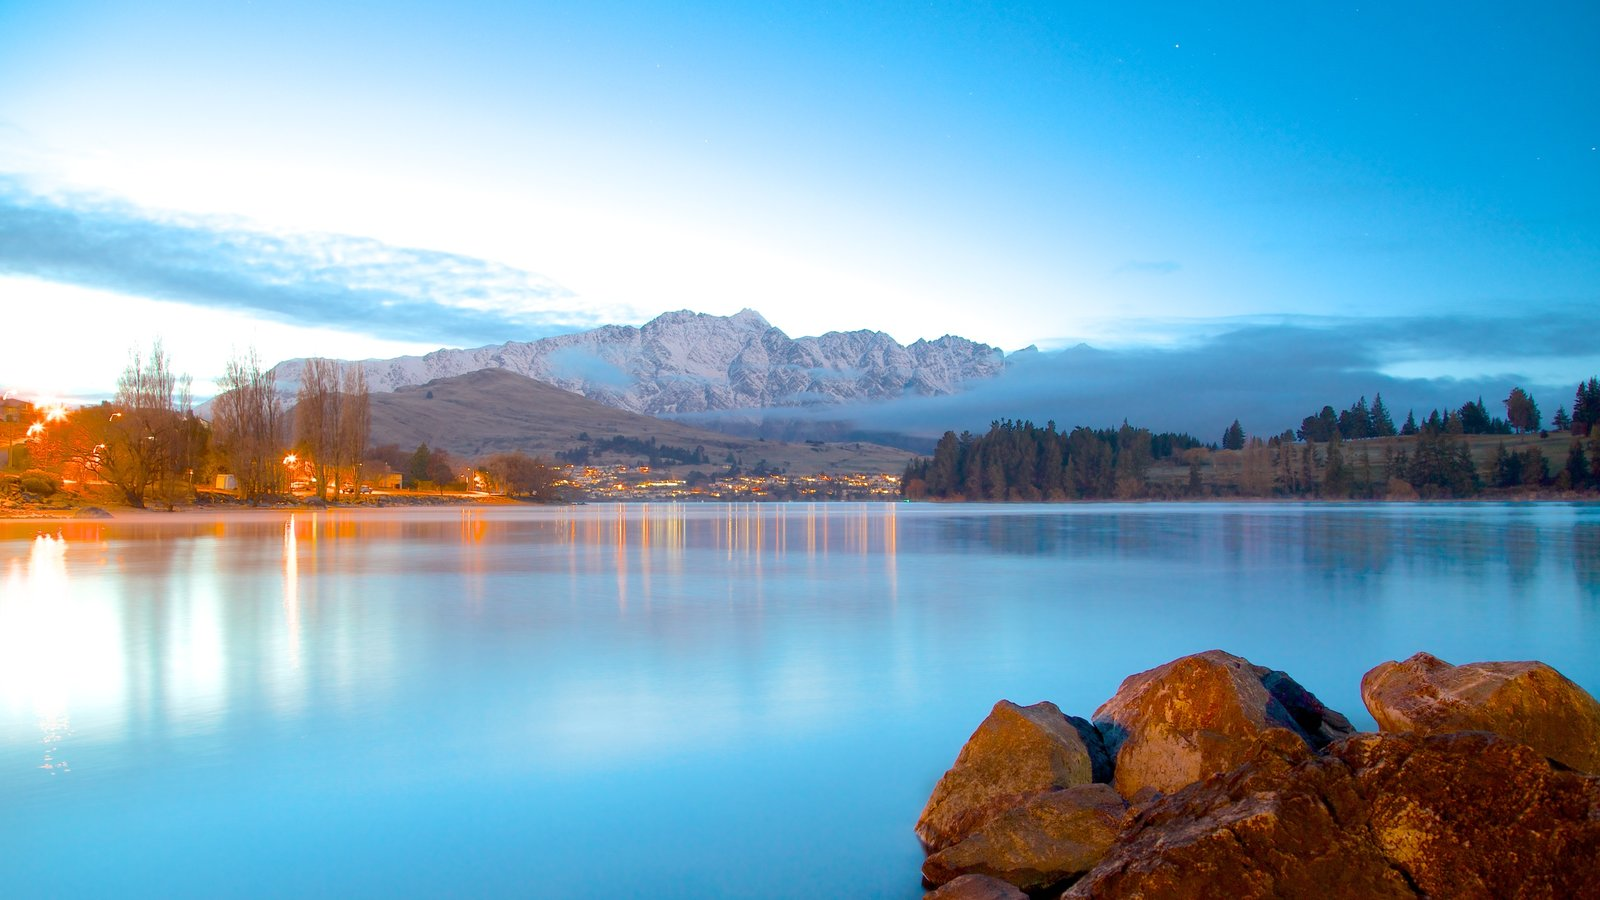 Queenstown showing mountains, landscape views and a lake or waterhole